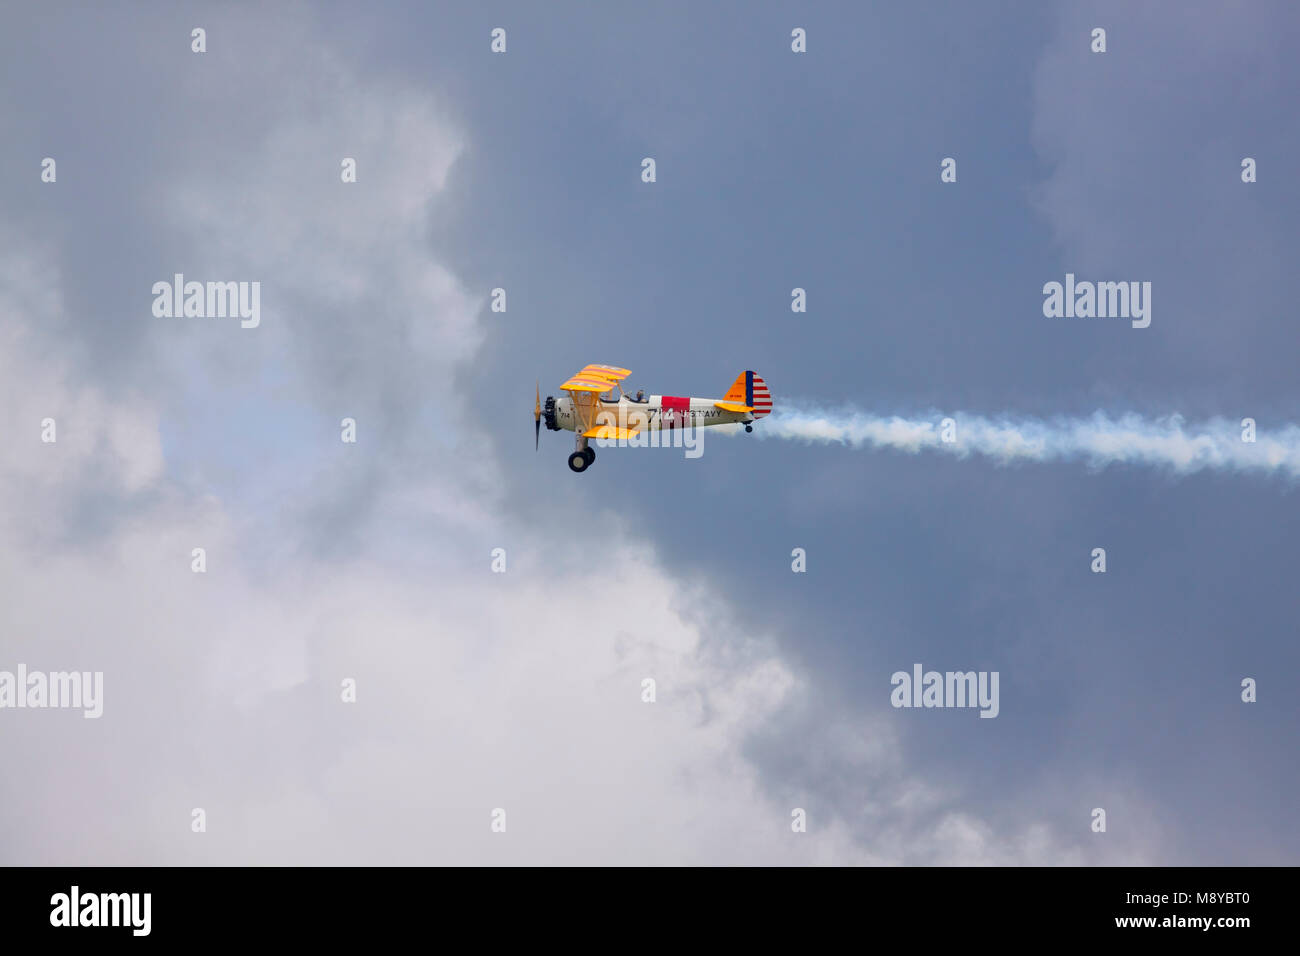 The Boeing Stearman N2S-3 in US Navy markings flying over cloudy sky during International Air Show at the 90th Jubilee - Stock Image